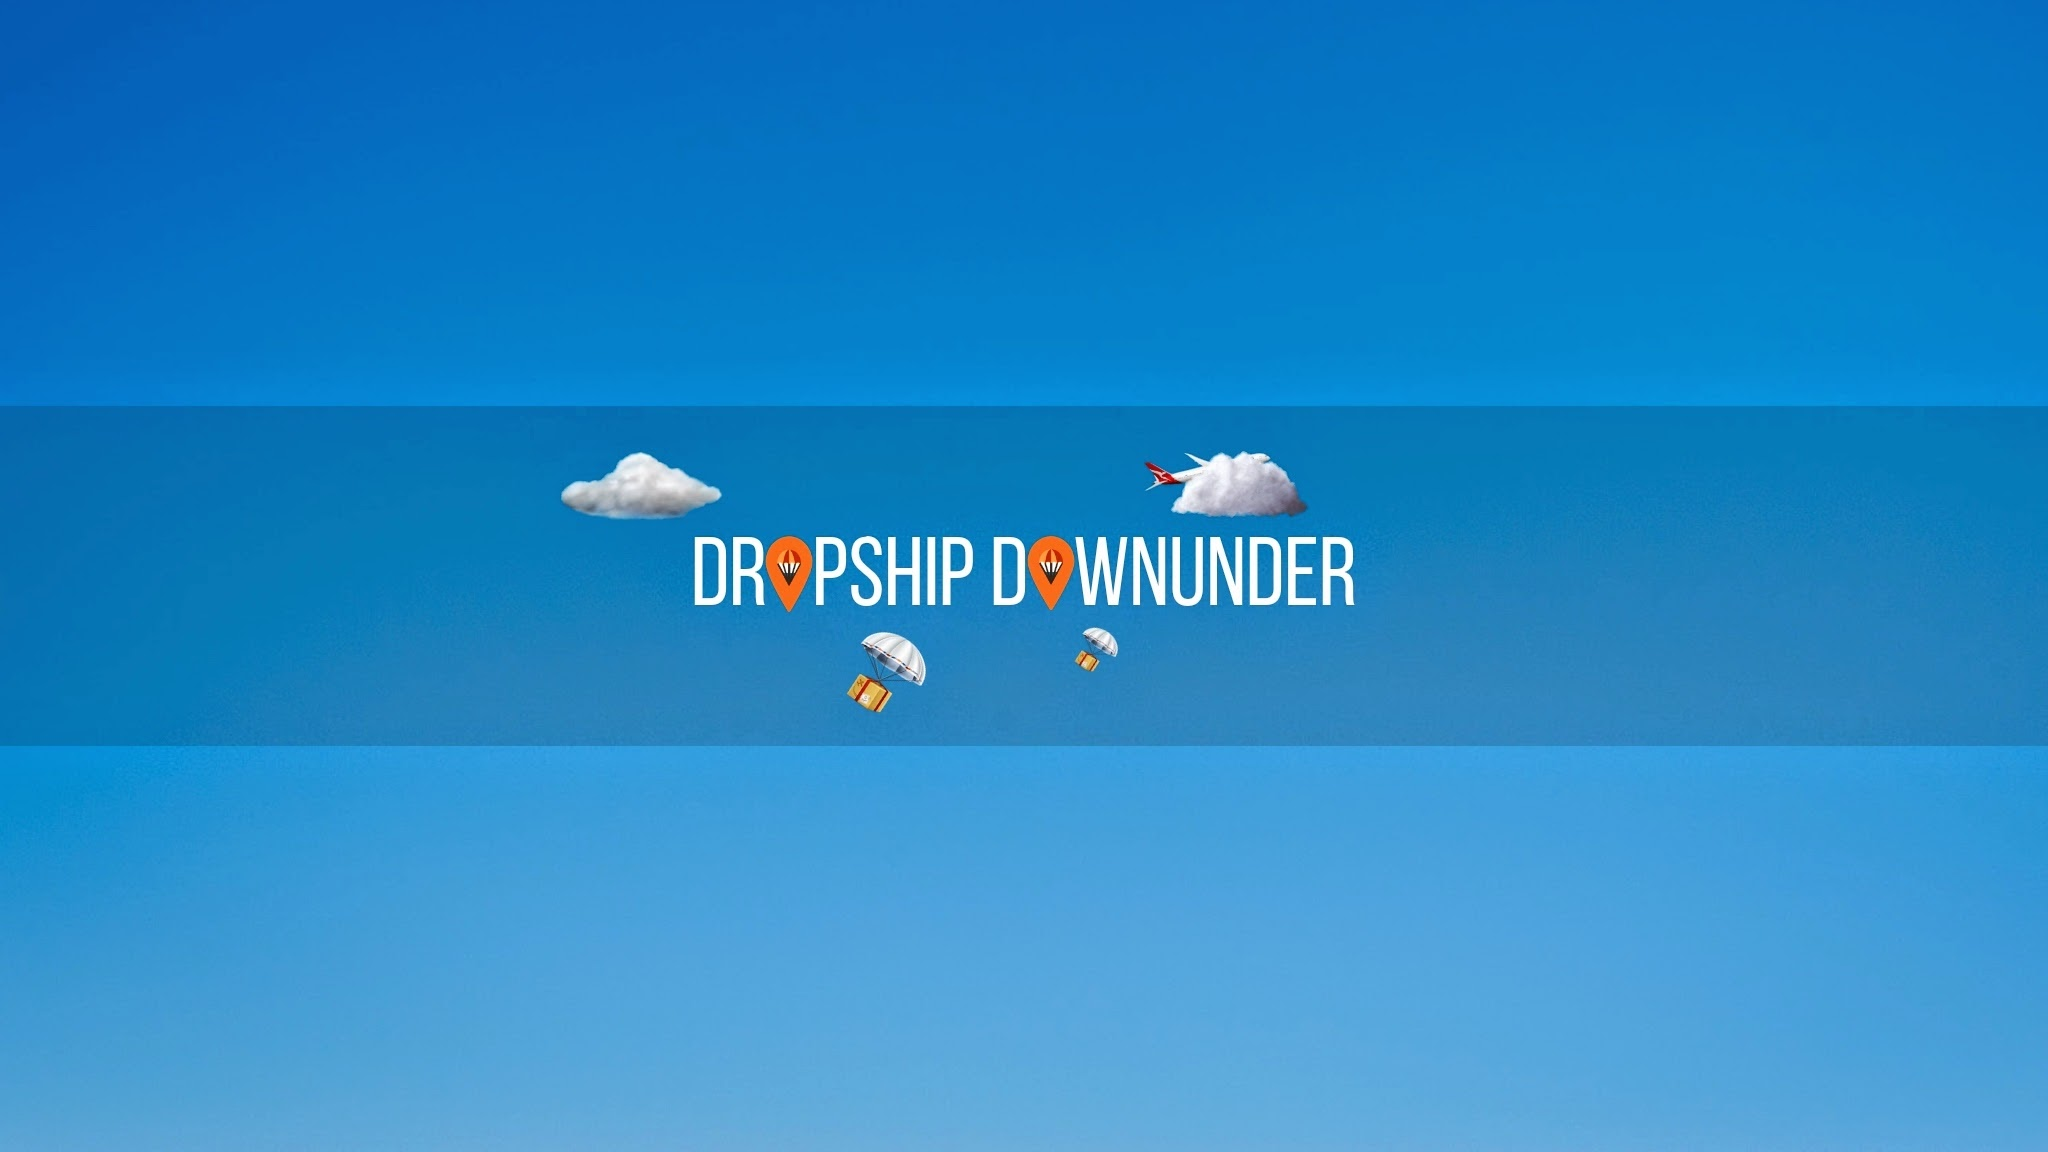 Dropship Downunder- eCommerce Youtube Channels 2021